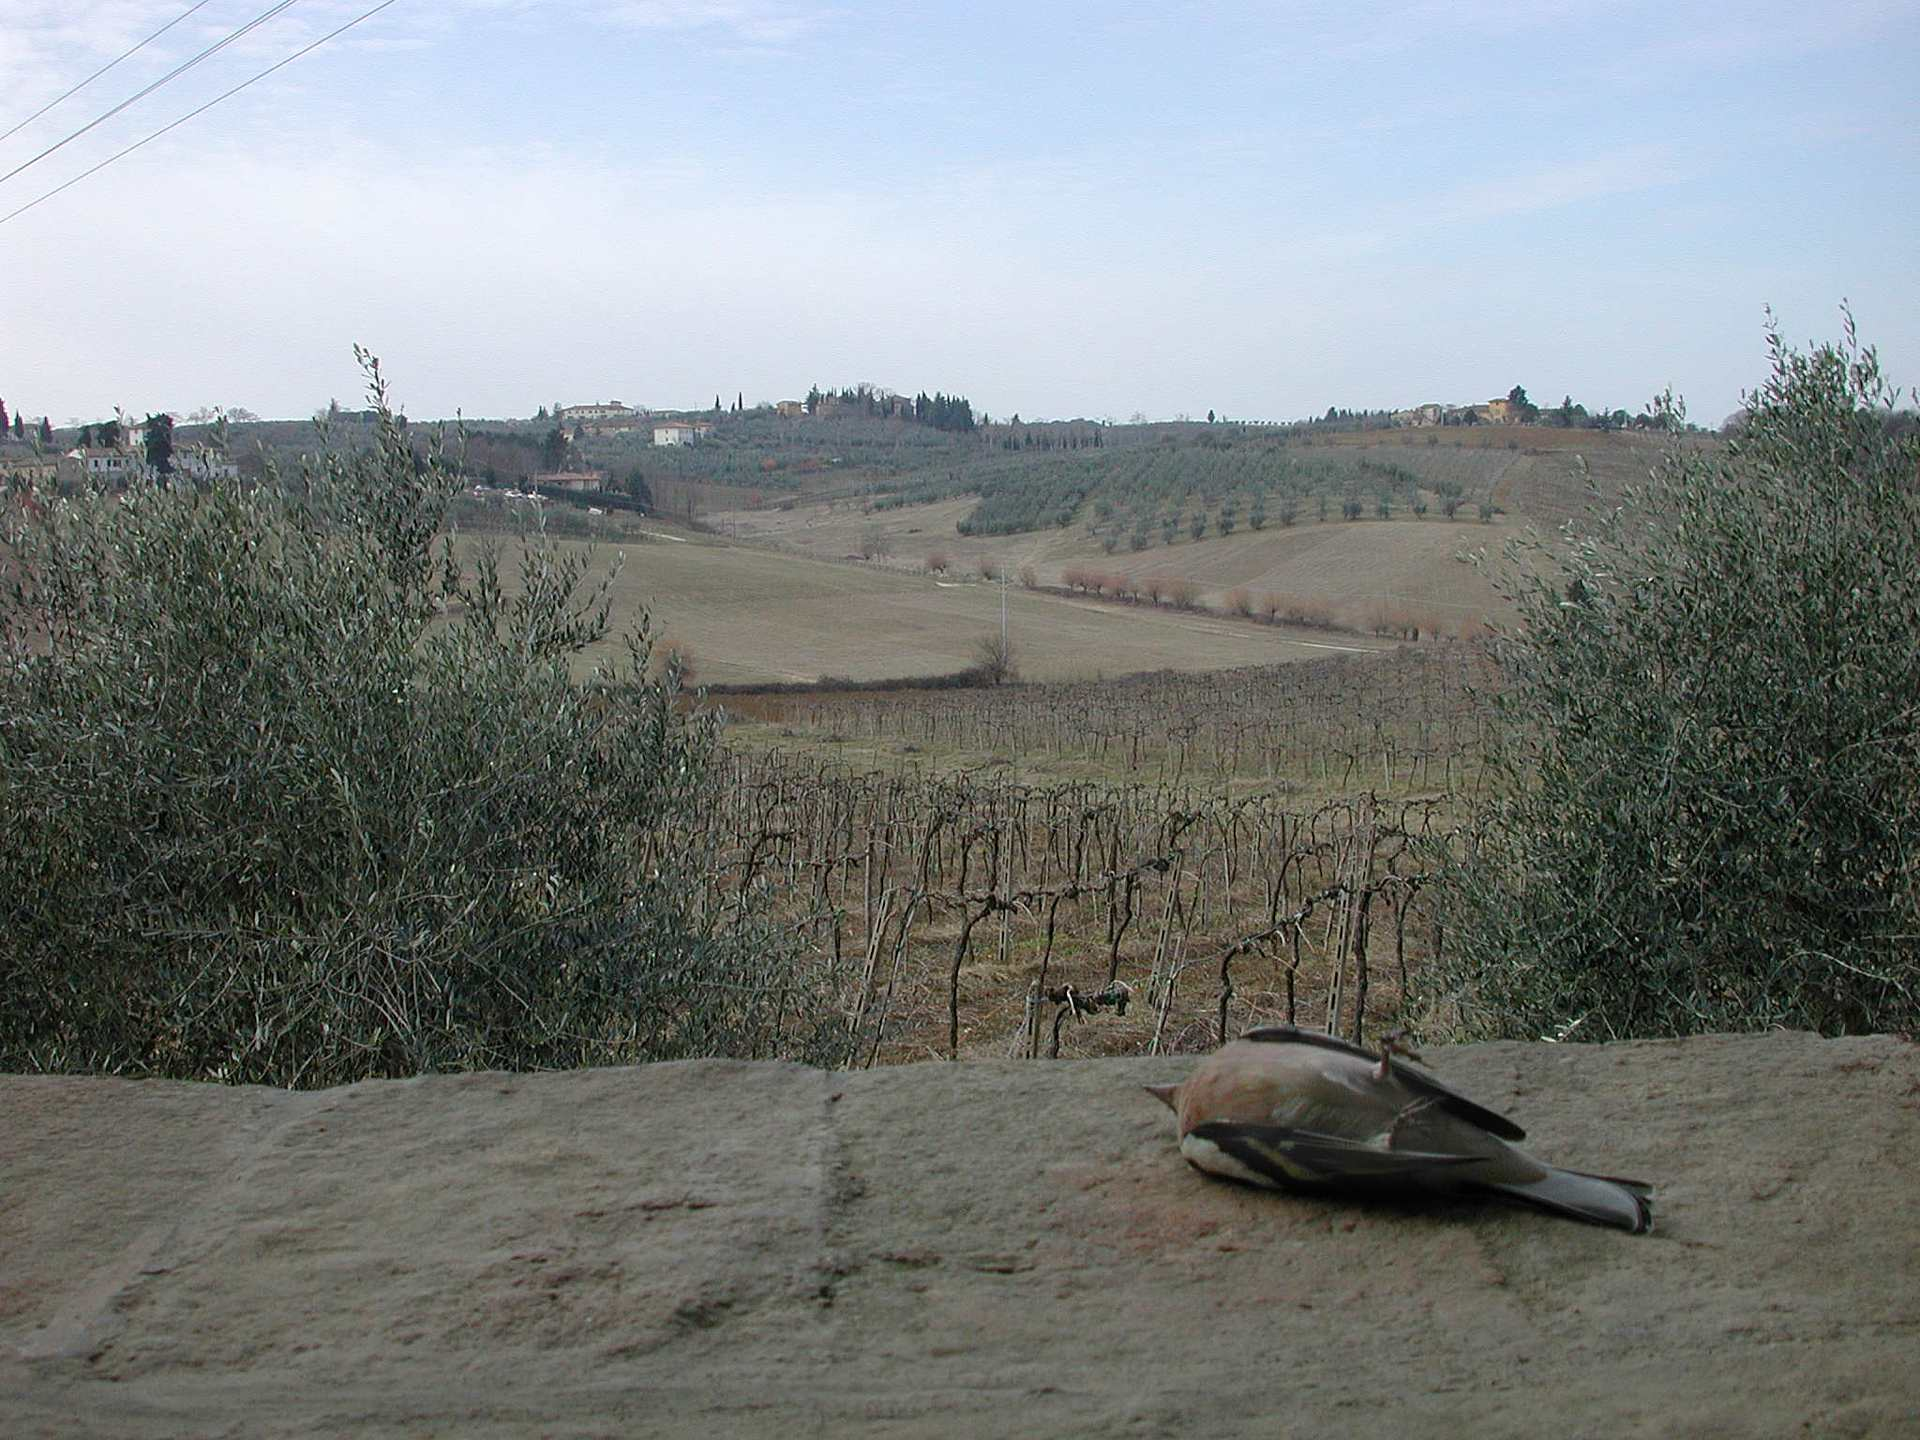 Tuscany, Tavarnelle Val di Pesa, The road is long